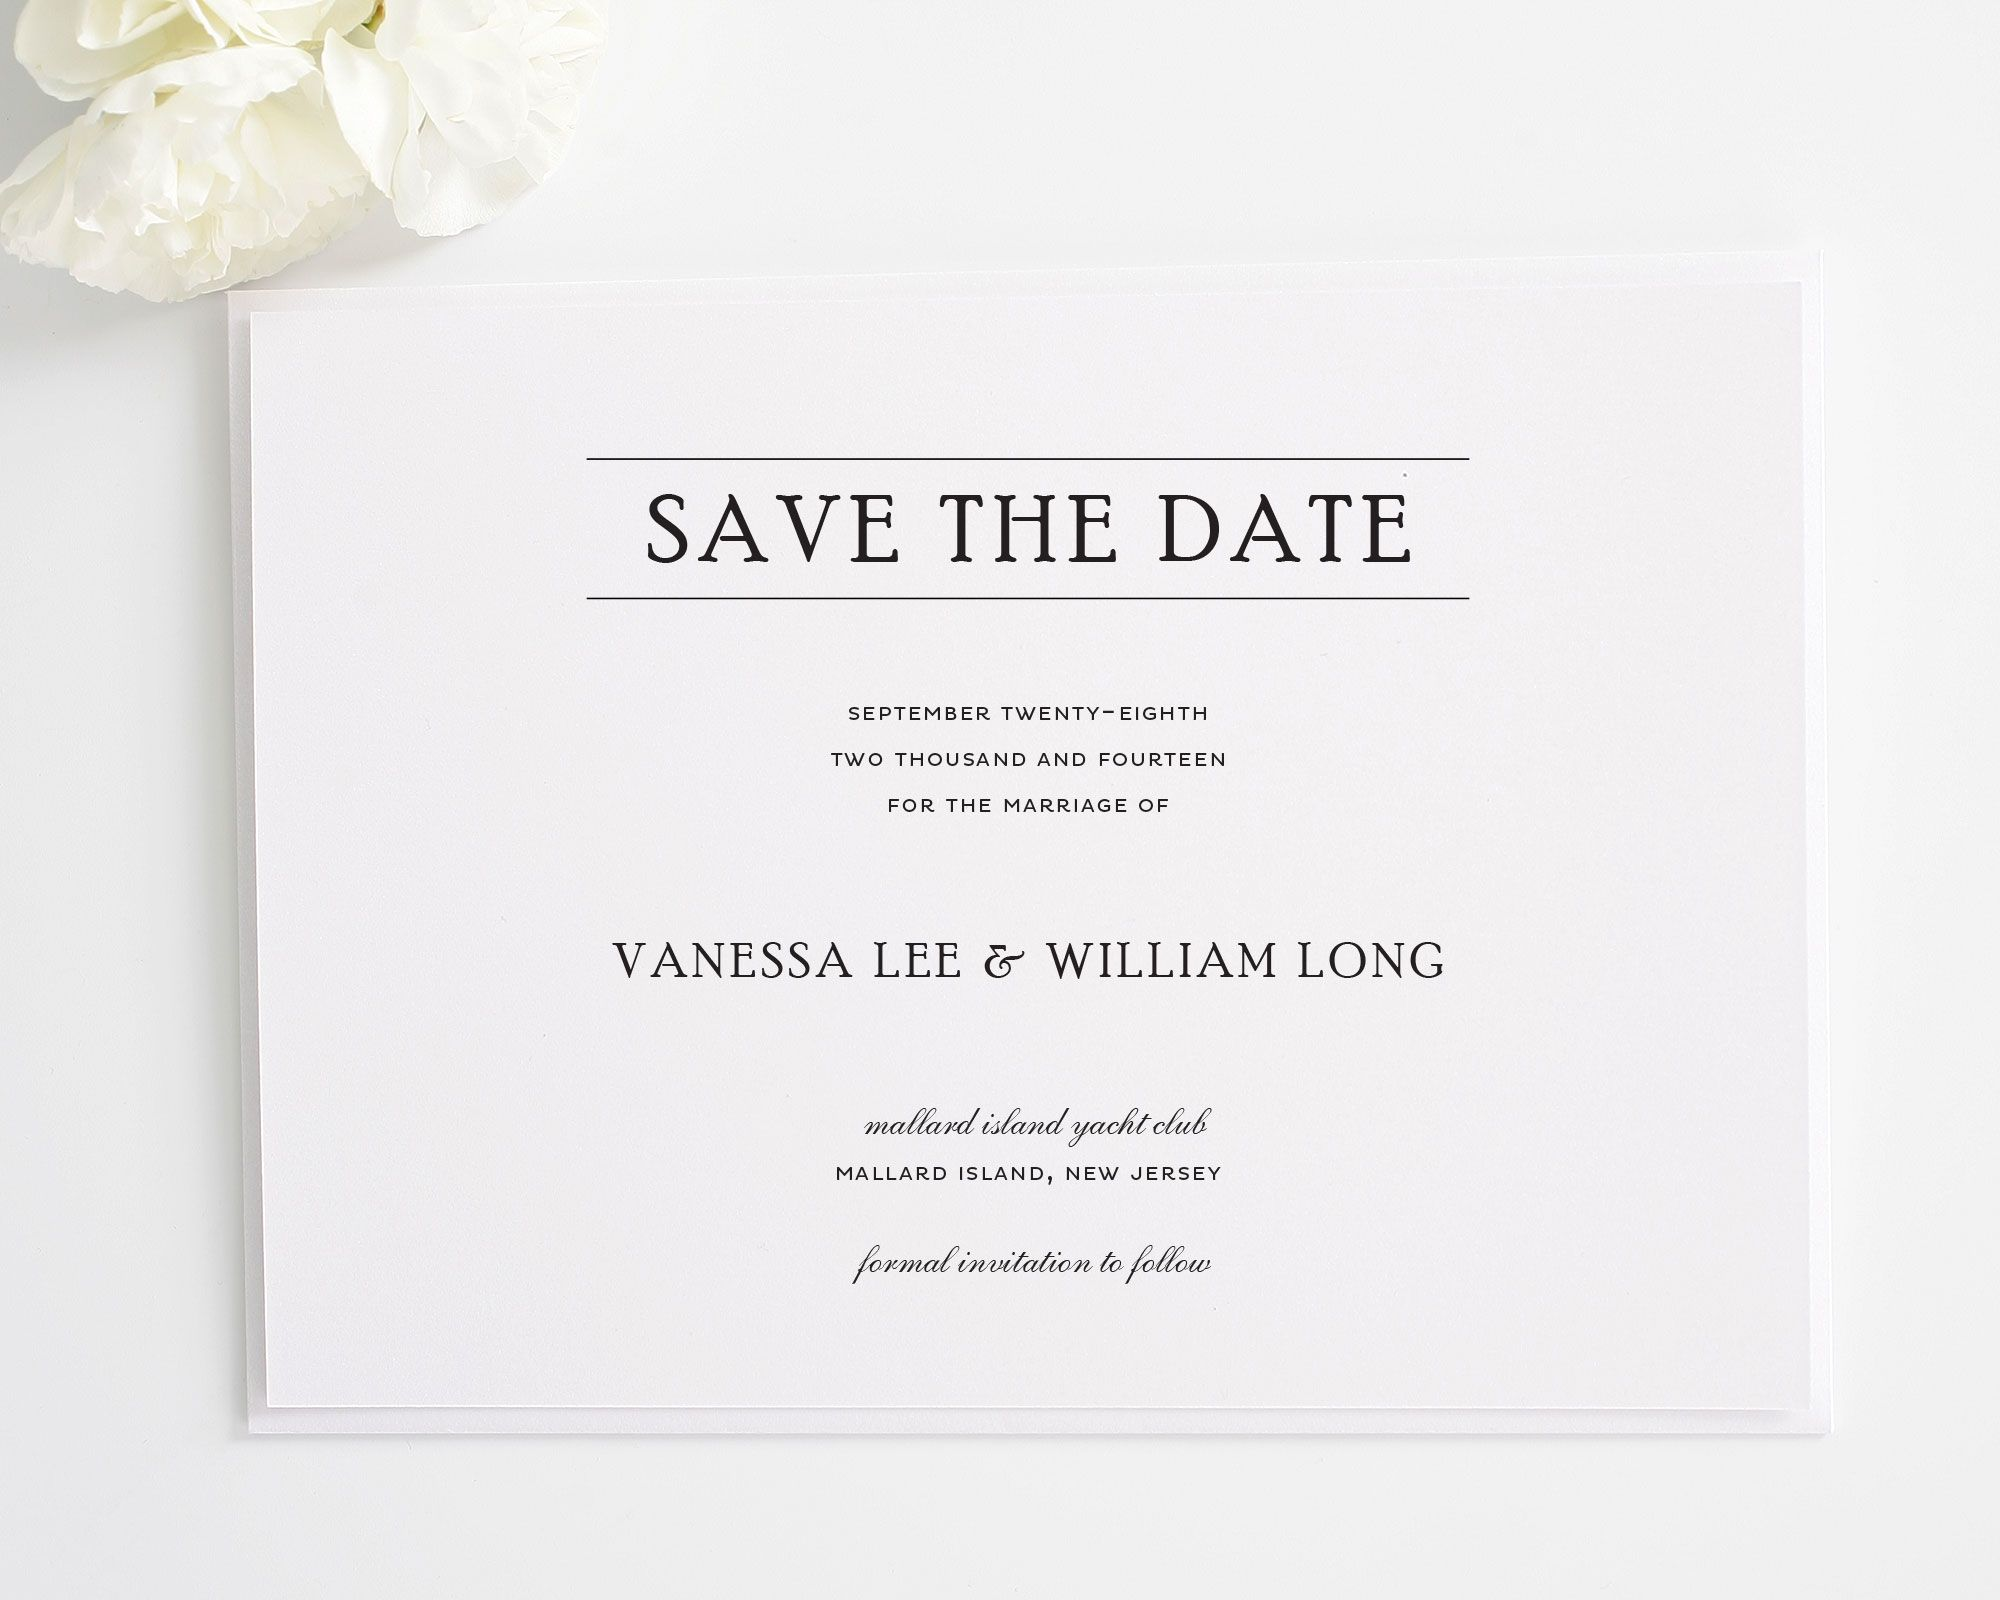 Throwback Thursday Telluride Colorado Wedding Save The Date Rustic Inspiration Weddings And